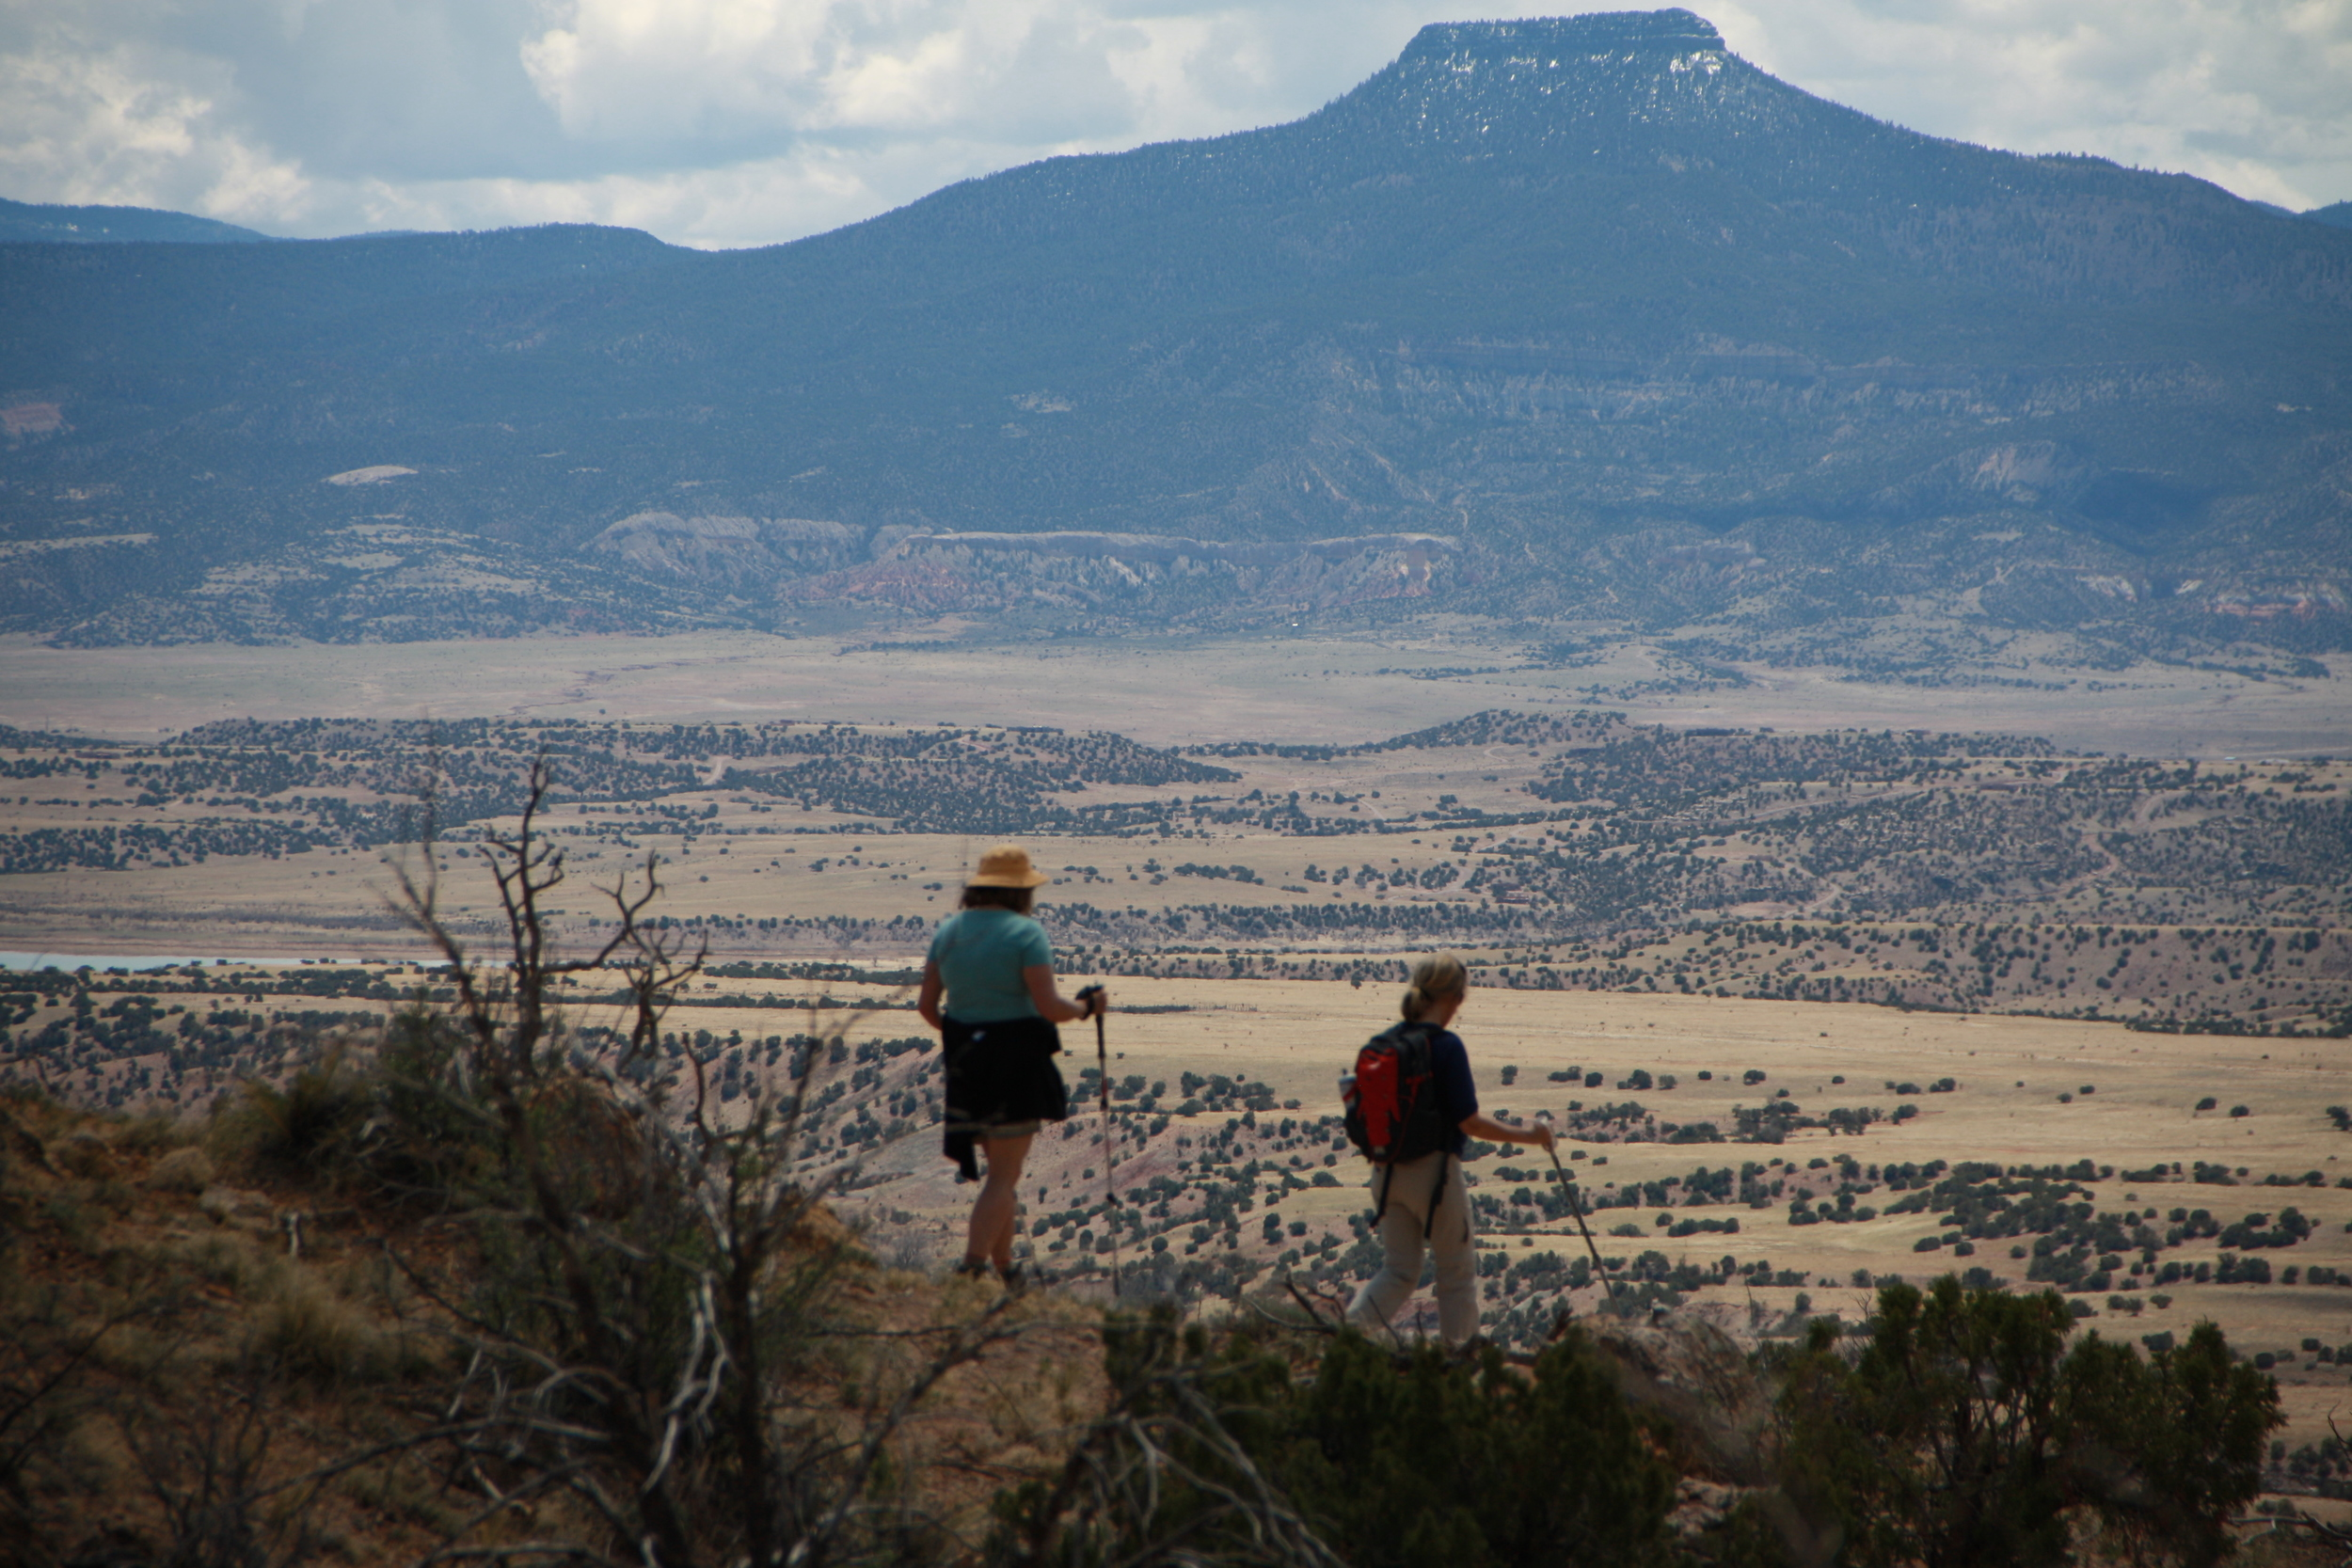 The Chama valley stretches below Margaret and Molly, with the snowy heights of Pedernal watching over.